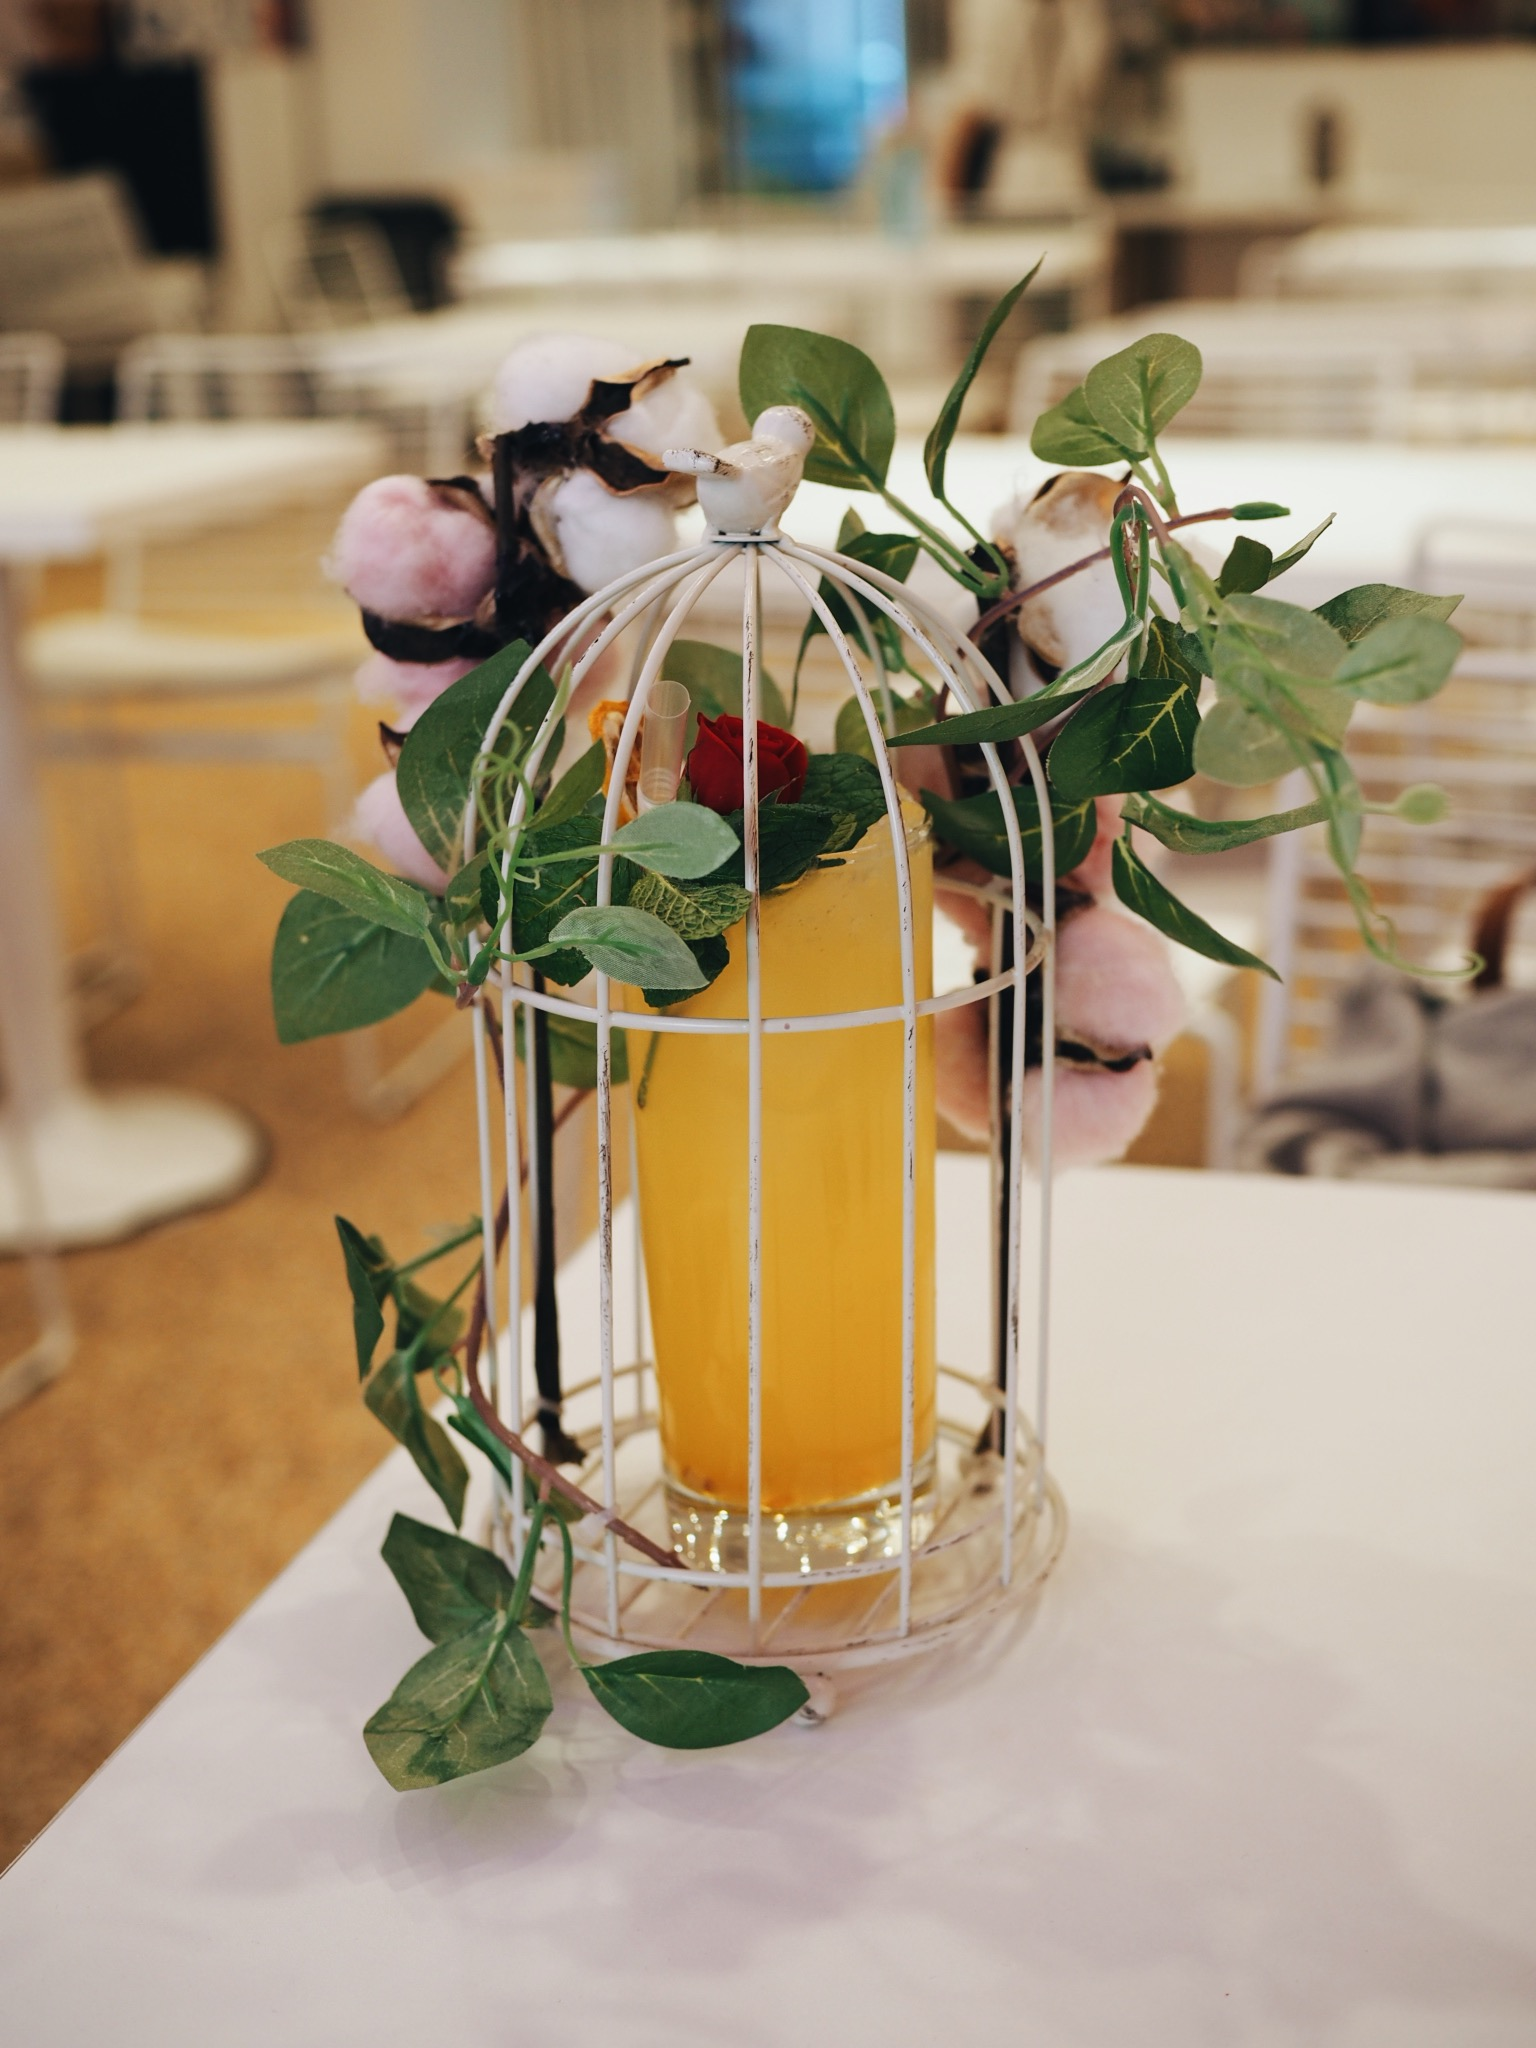 Urban Space drink in small cage